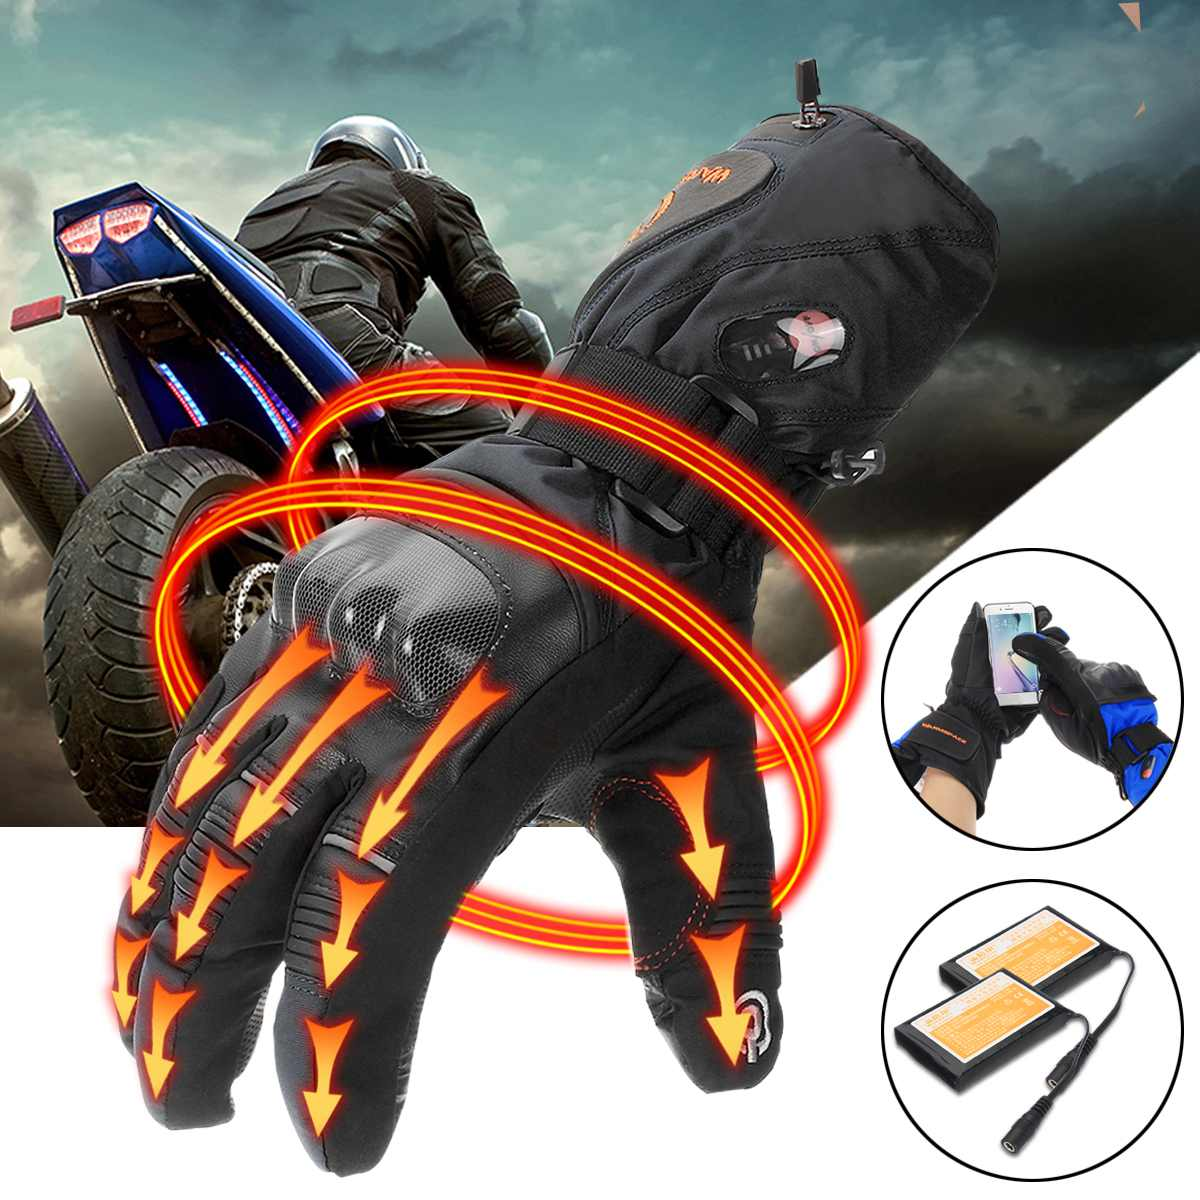 5600mah 7.4V Rechargeable Electric Gloves Heated Li Battery For Motorcycle Riding Snowboarding Skiing